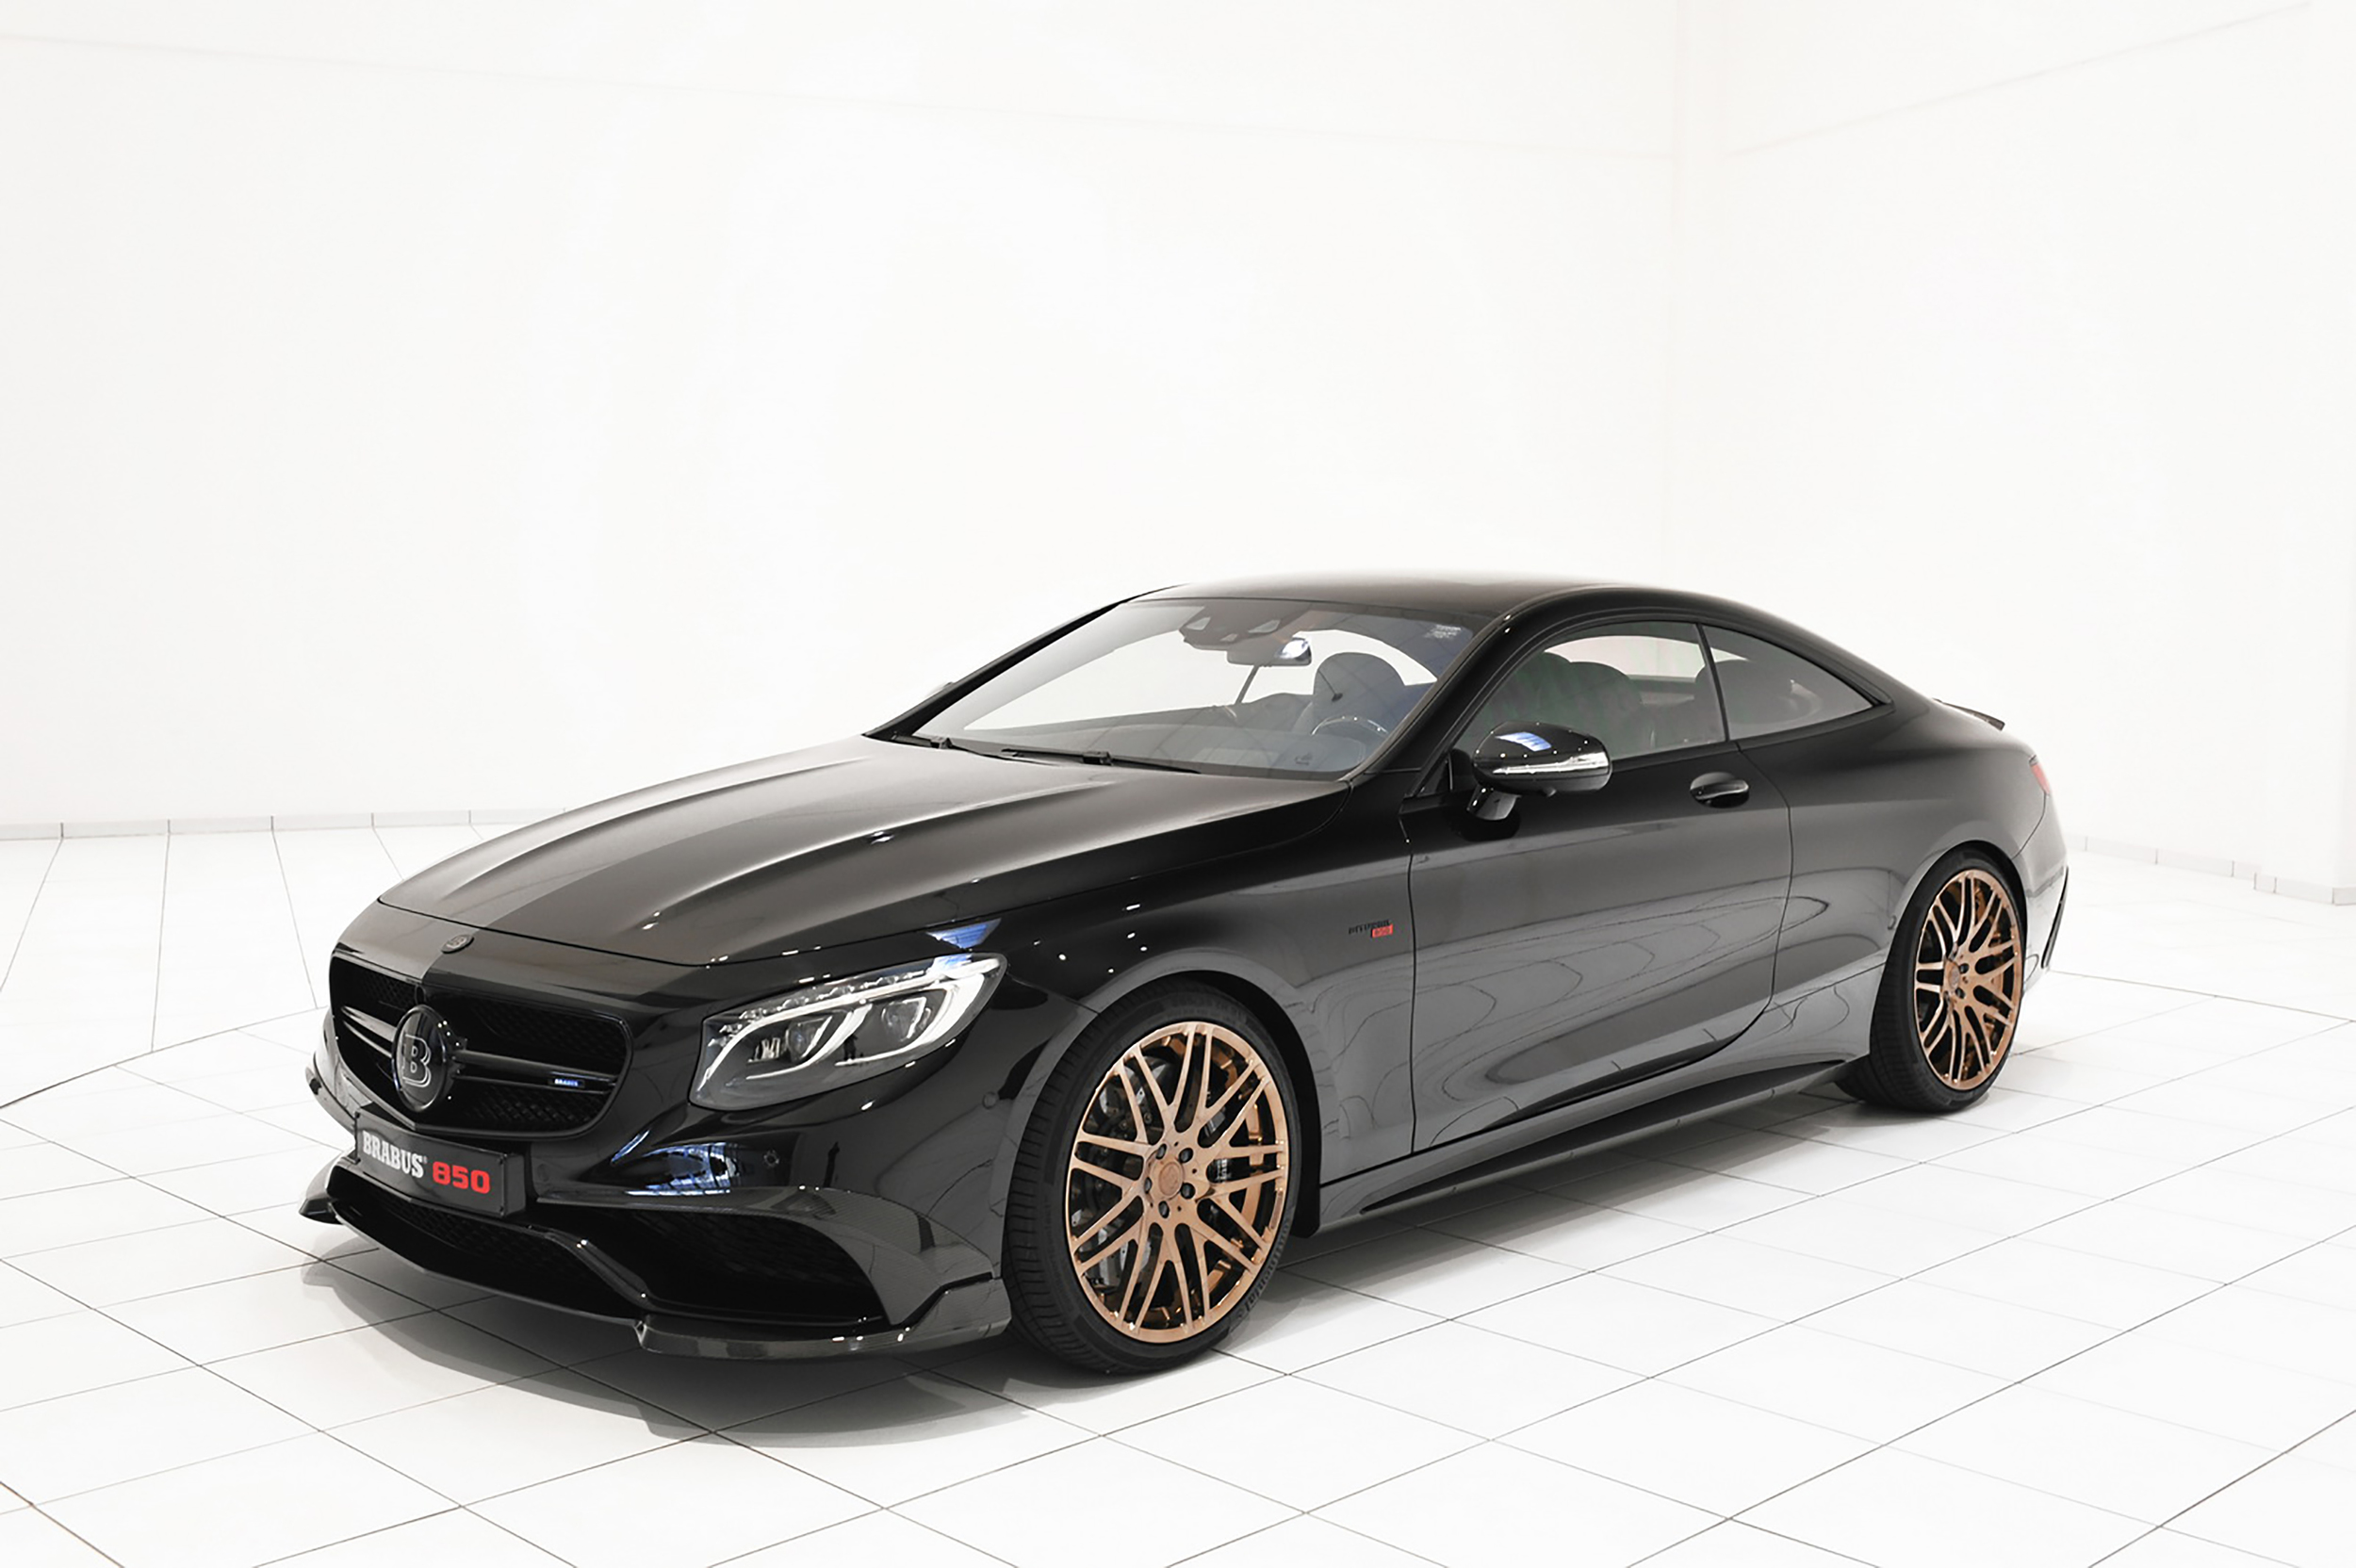 ' ' from the web at 'http://www.blogcdn.com/slideshows/images/slides/335/948/0/S3359480/slug/l/brabus-s-class-coupe-11-1.jpg'